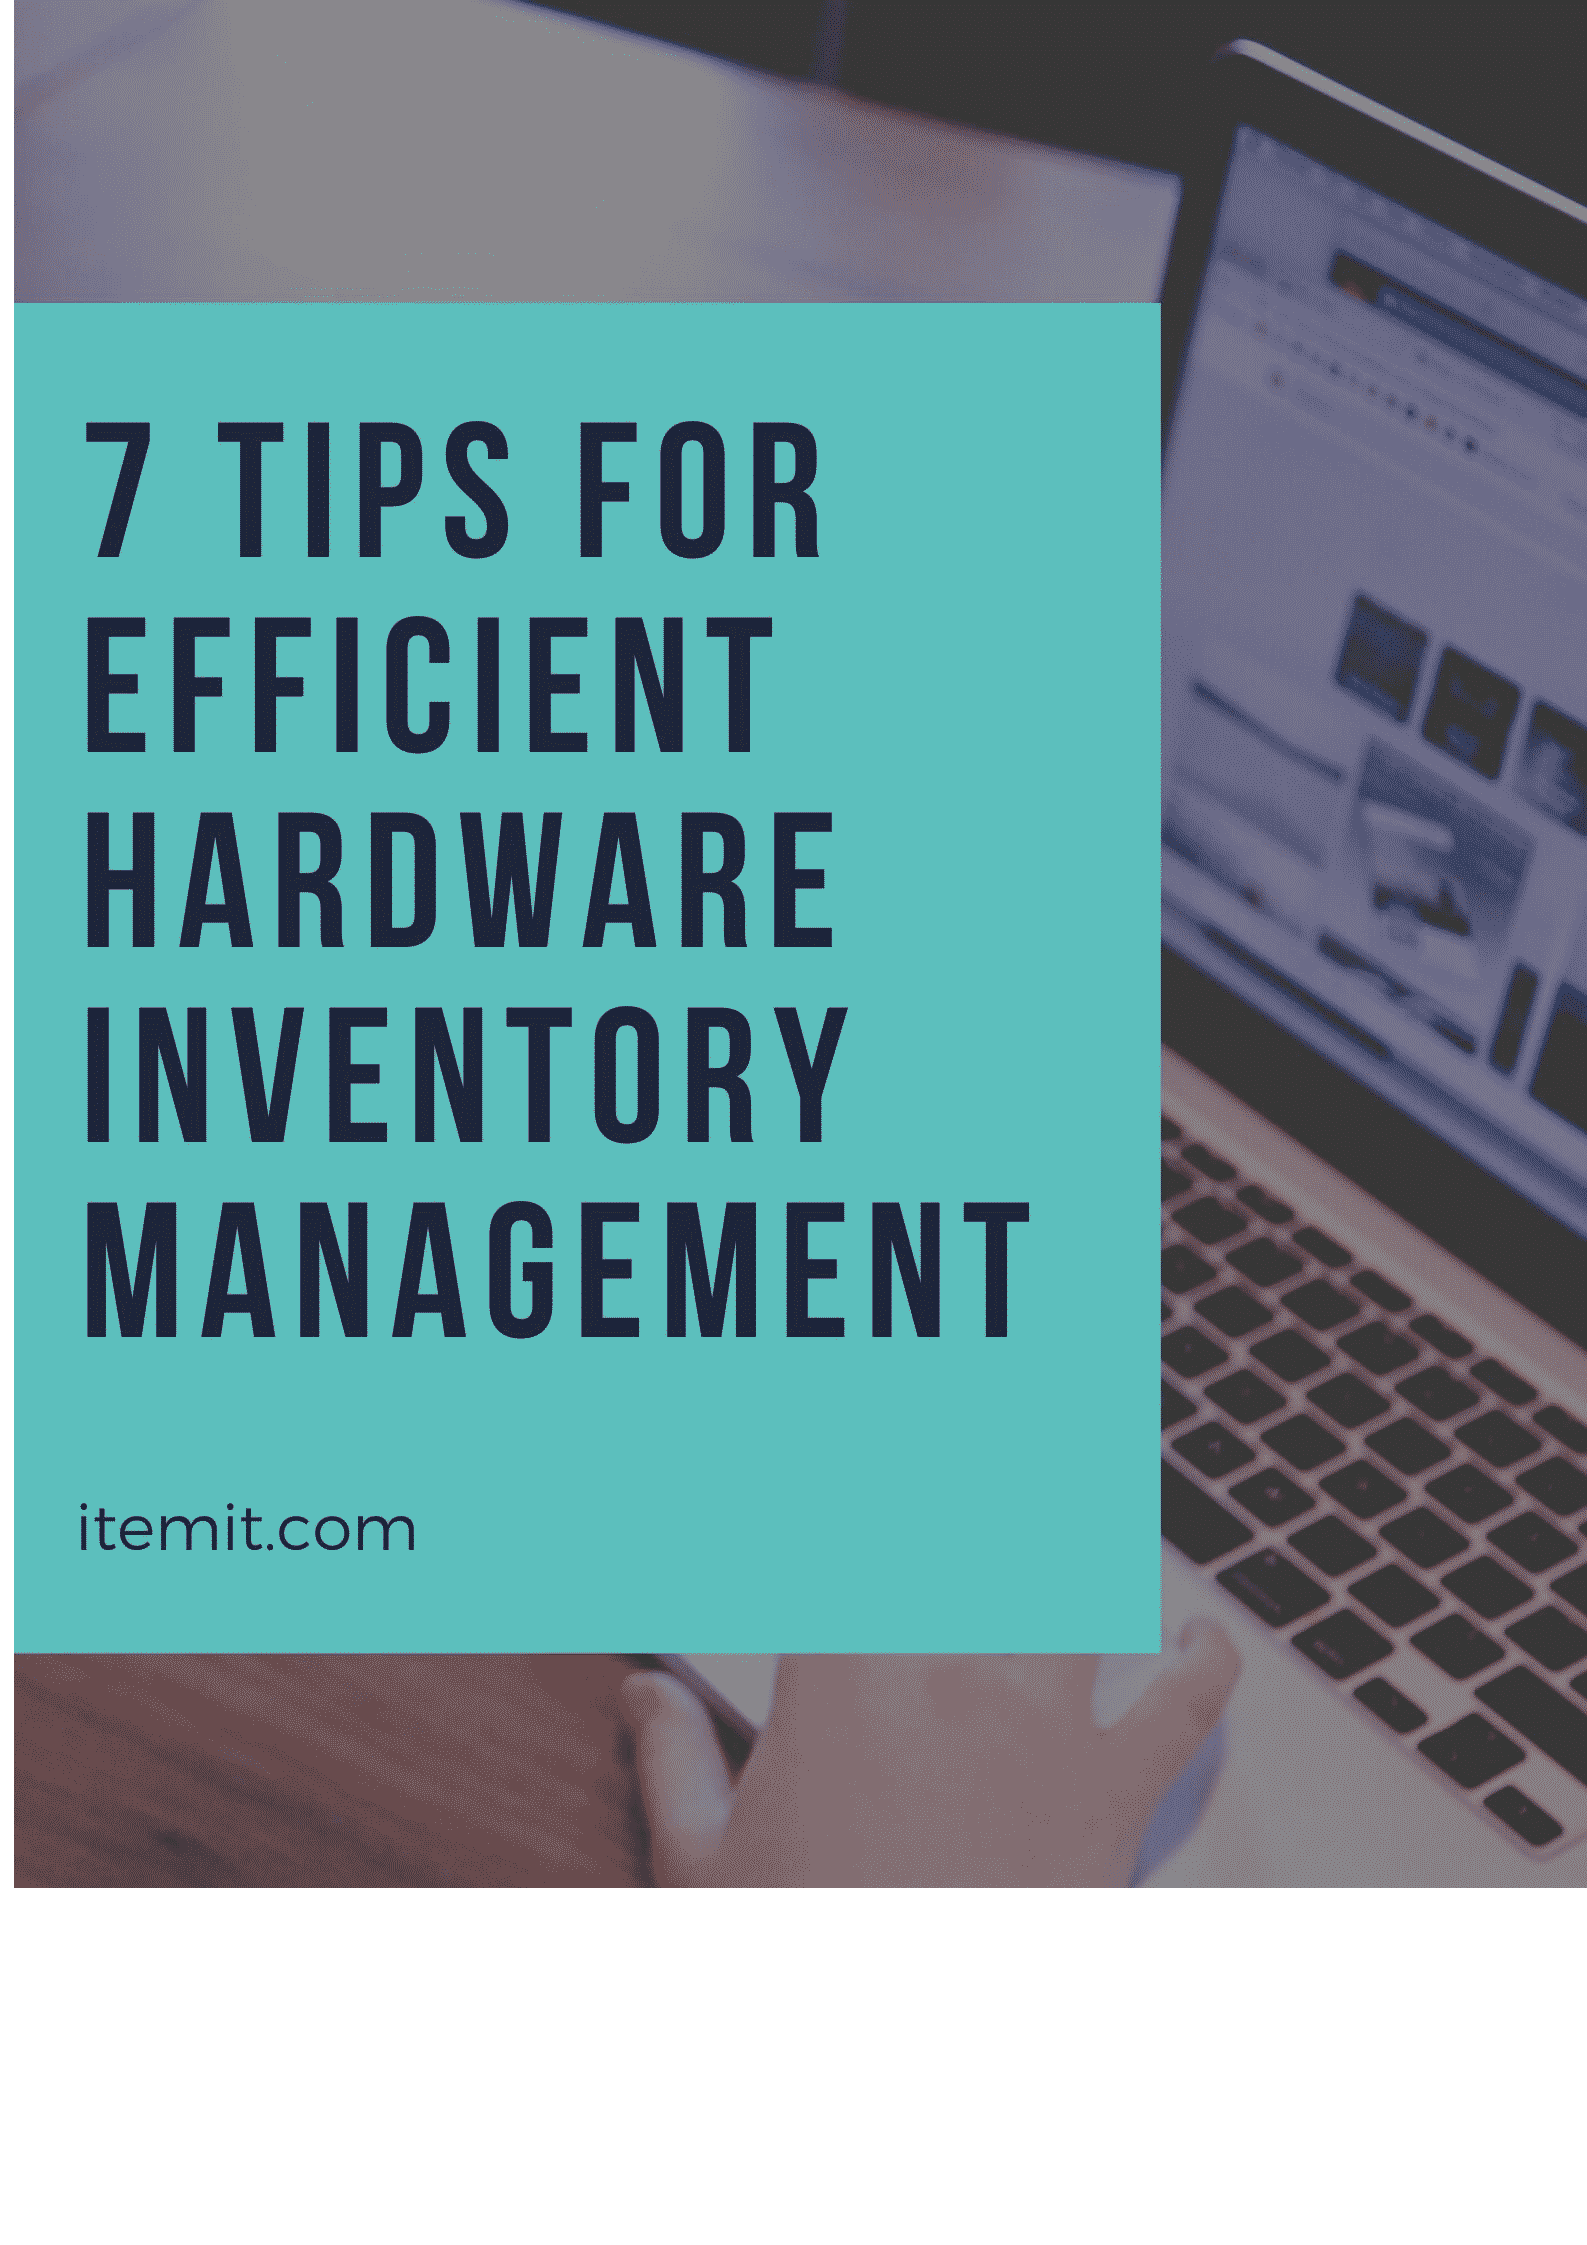 7 tips for efficient hardware inventory management